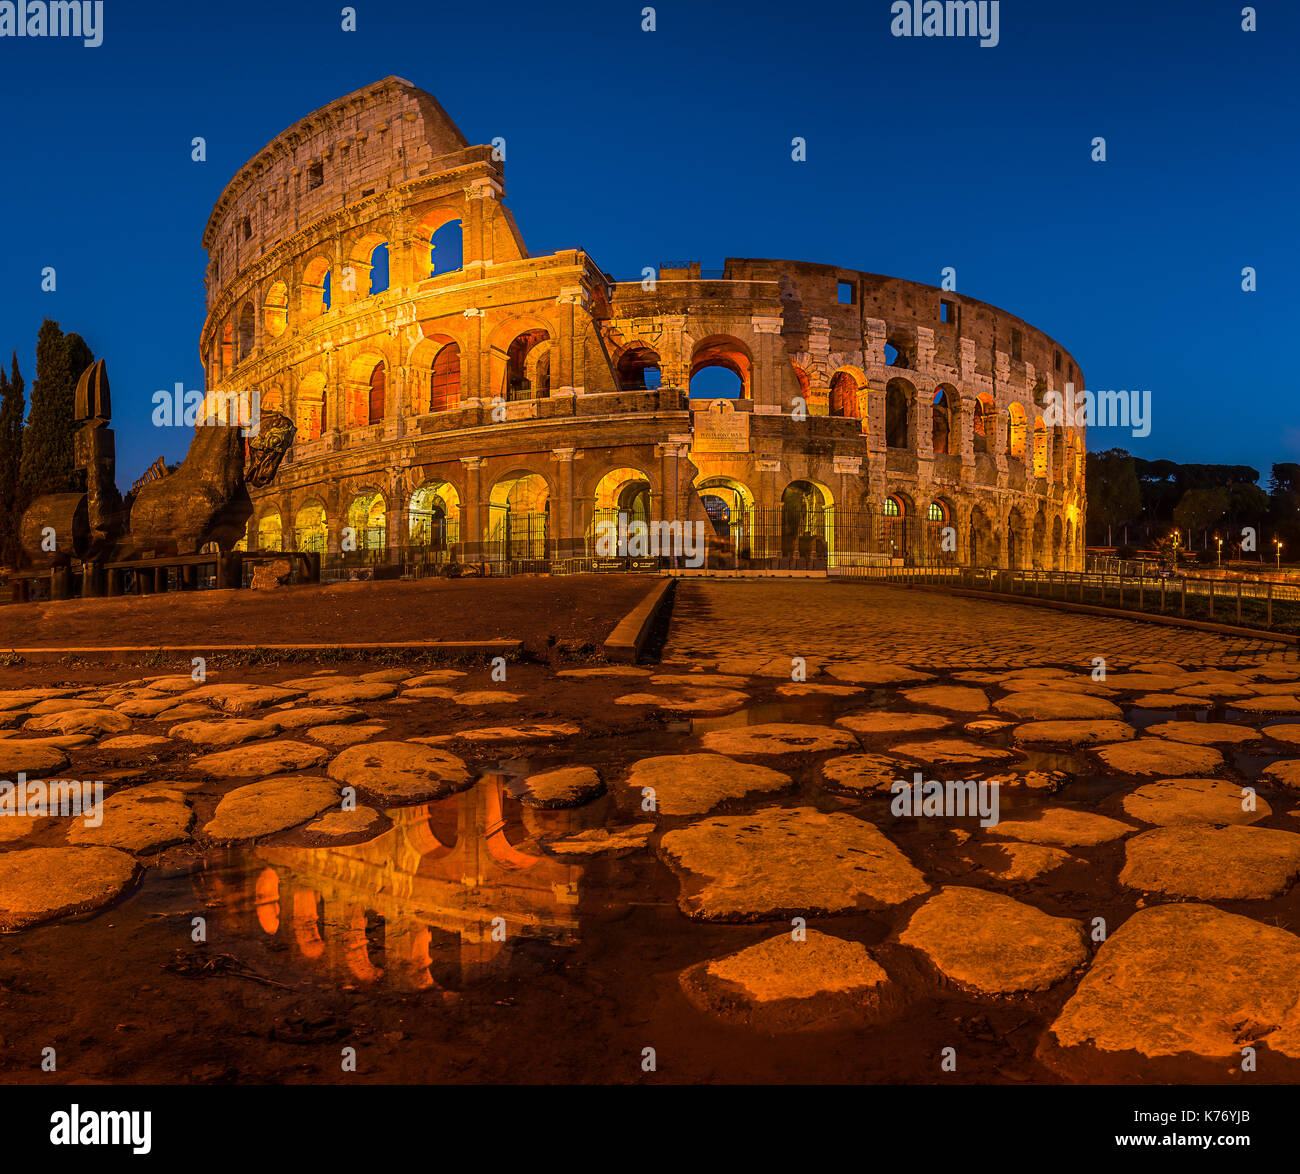 The perfect shot over the Colosseum. The foreground is reflecting the famous building making the shot epic. This - Stock Image